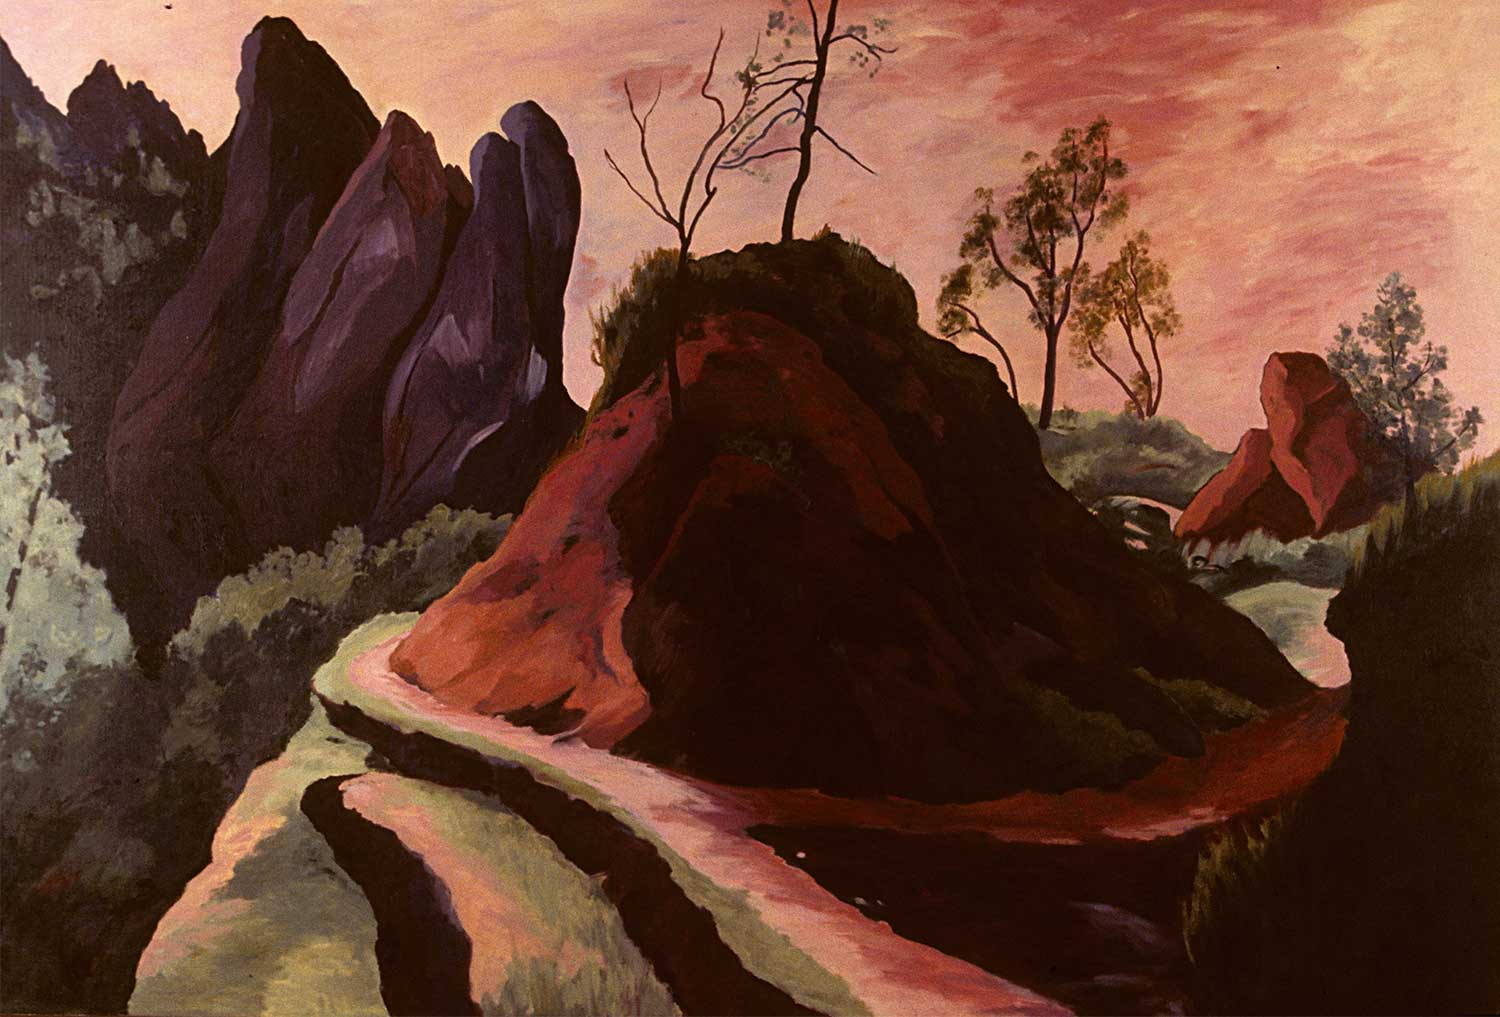 Pinnacles #8, Oil pastel on paper, Paintings of California by Mary Alice Copp